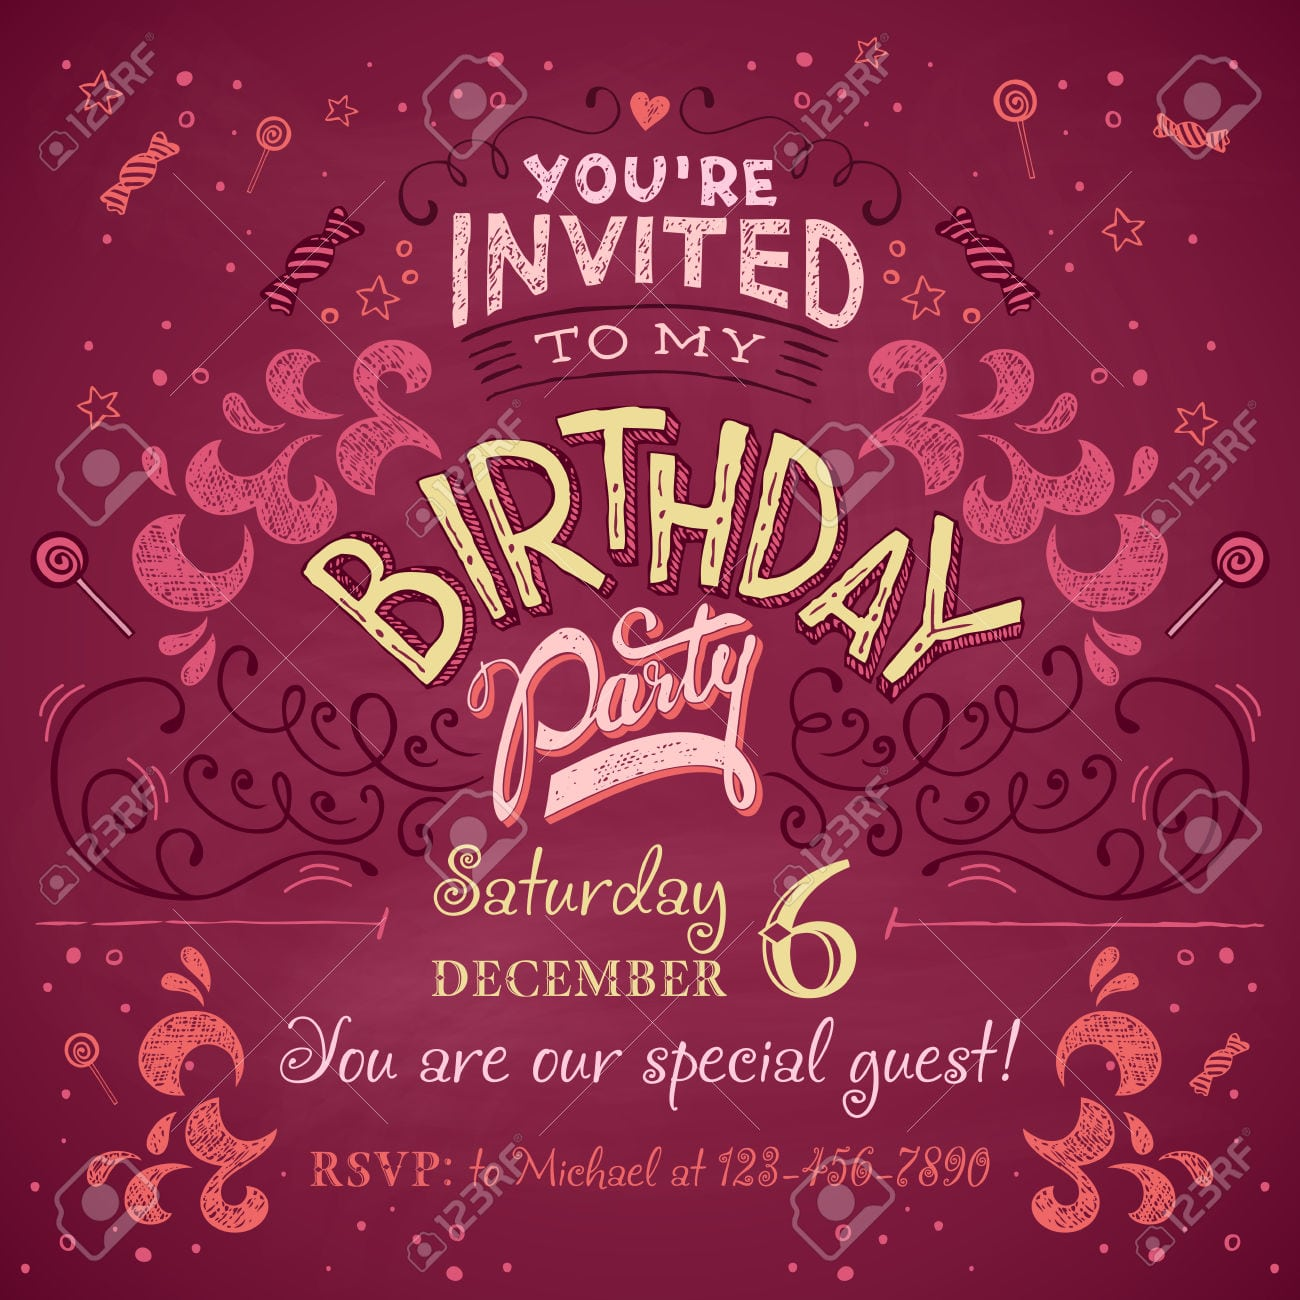 Vintage Birthday Party Invitation Card Design Typography And